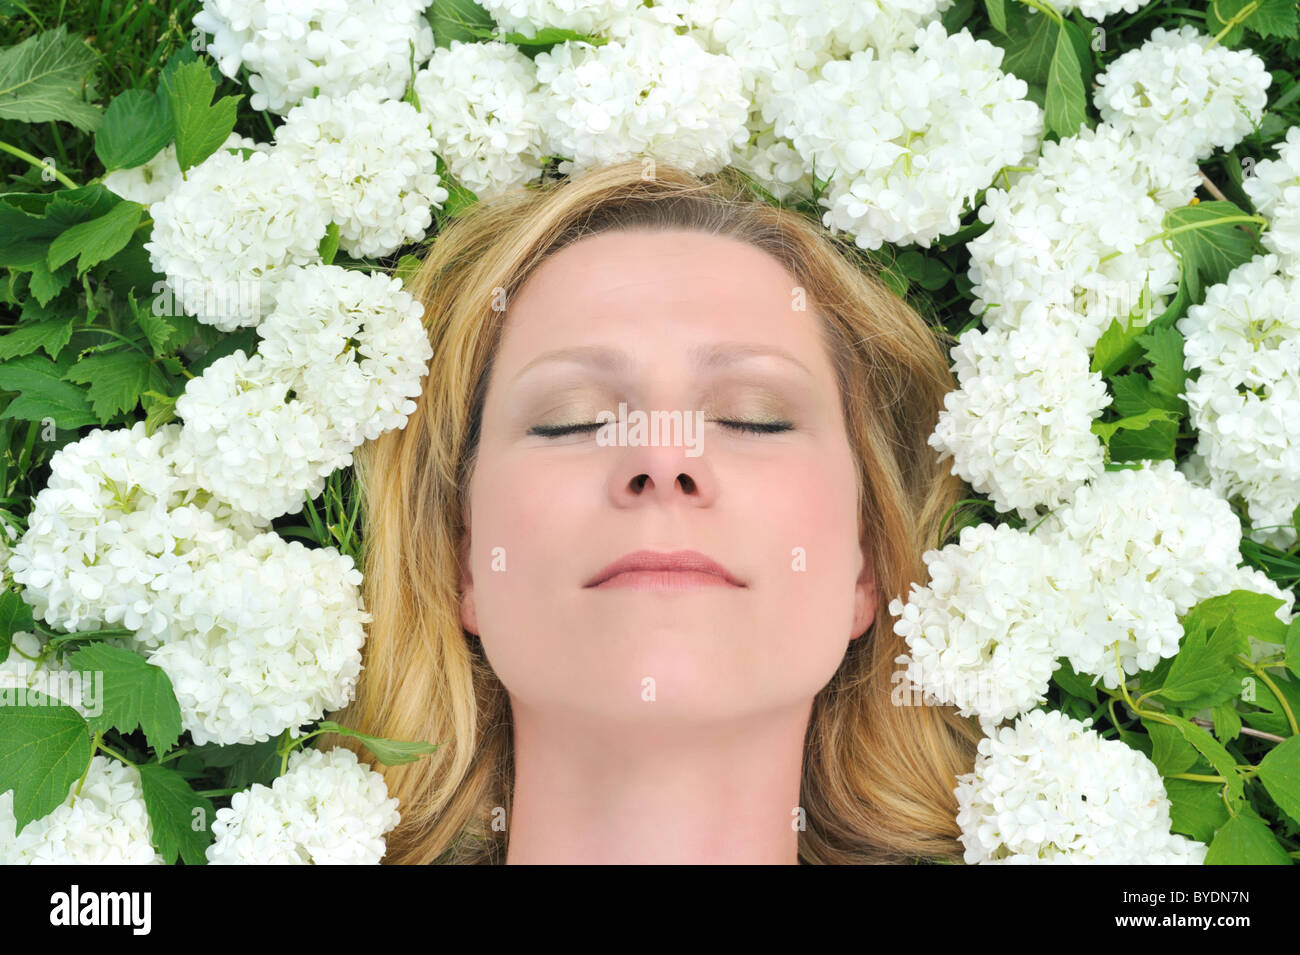 Young woman laying in flowers - snowballs Stock Photo